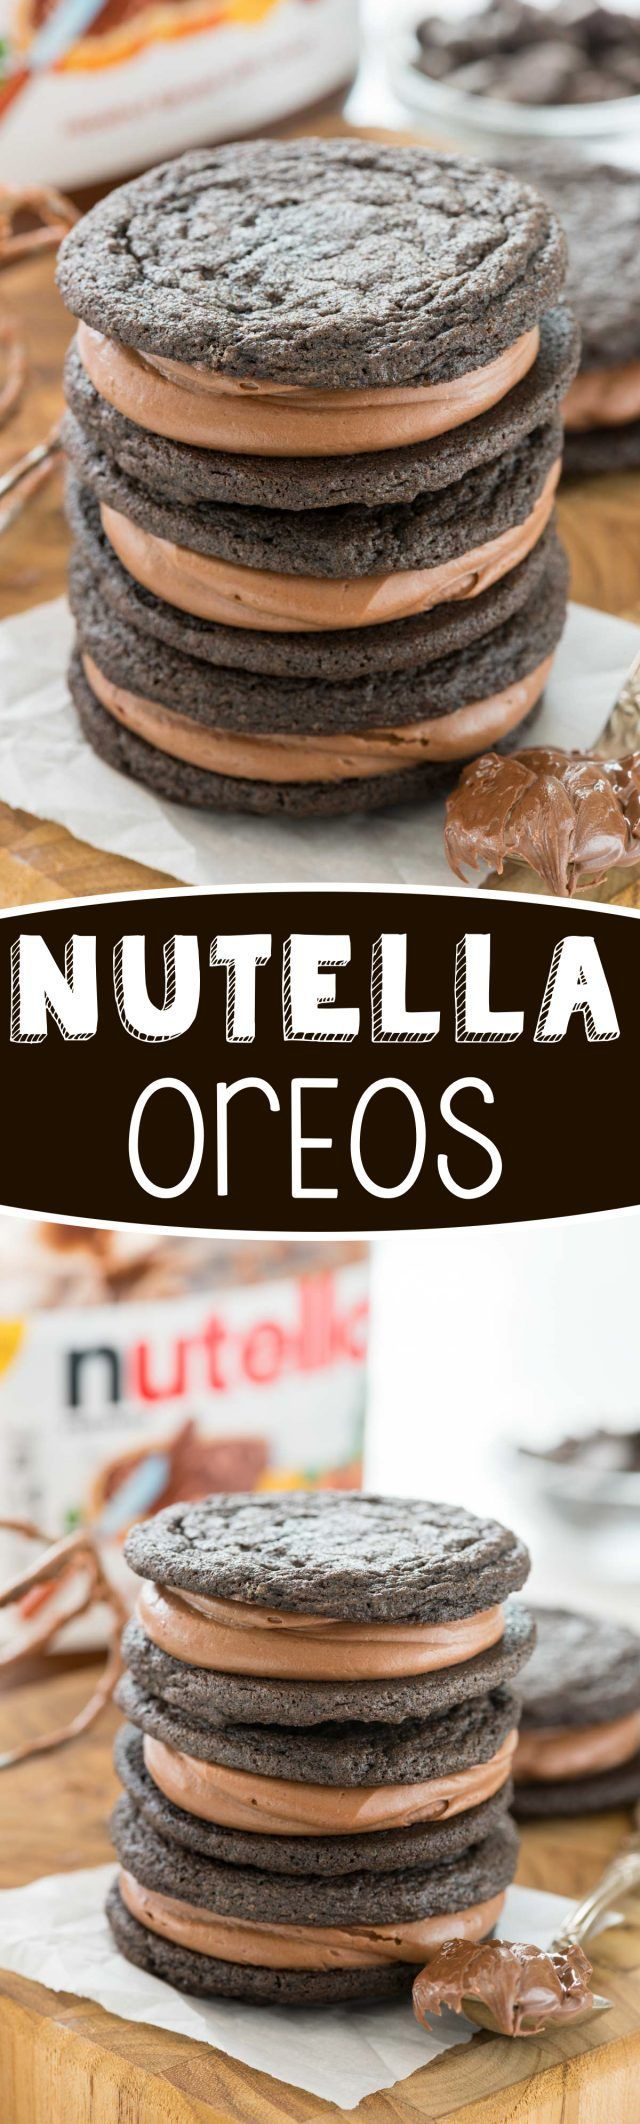 Homemade Nutella Oreos - this easy cookie recipe tastes JUST like an Oreo! Filled with the BEST Nutella frosting recipe, they're so good we couldn't stop eating them!